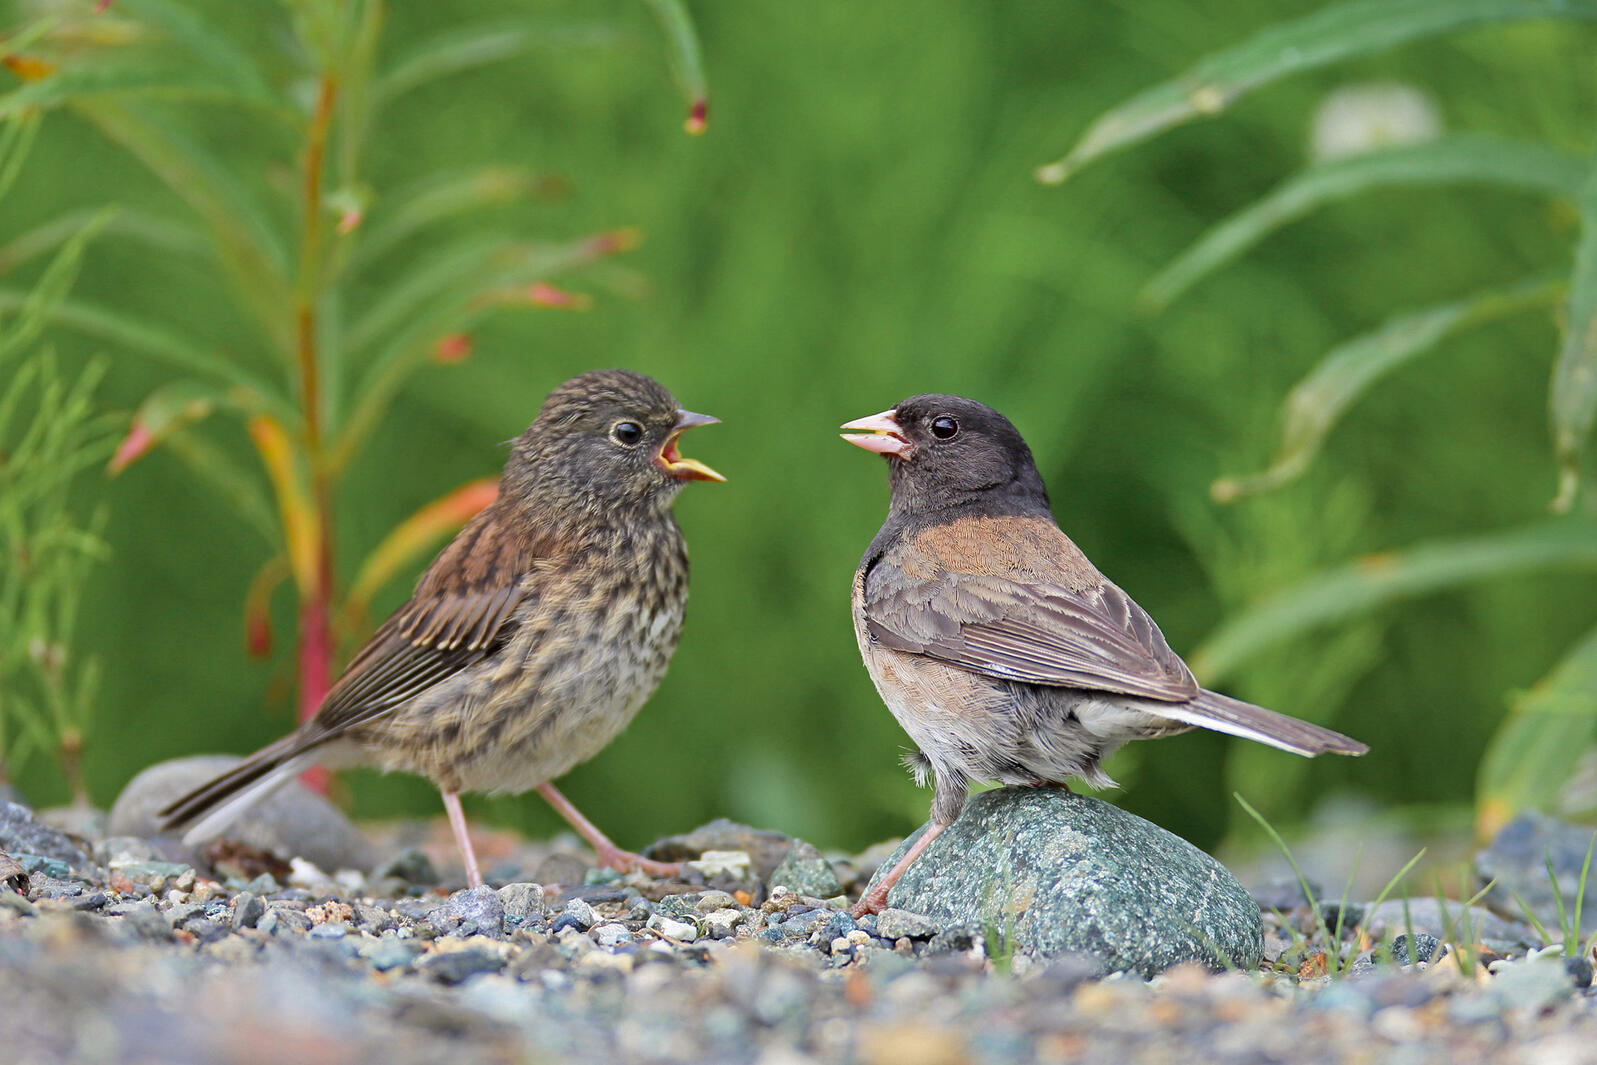 Dark-eyed Junco fledglings and parents have different ideas about when it's appropriate for the younger bird to move out. blickwinkel/Alamy